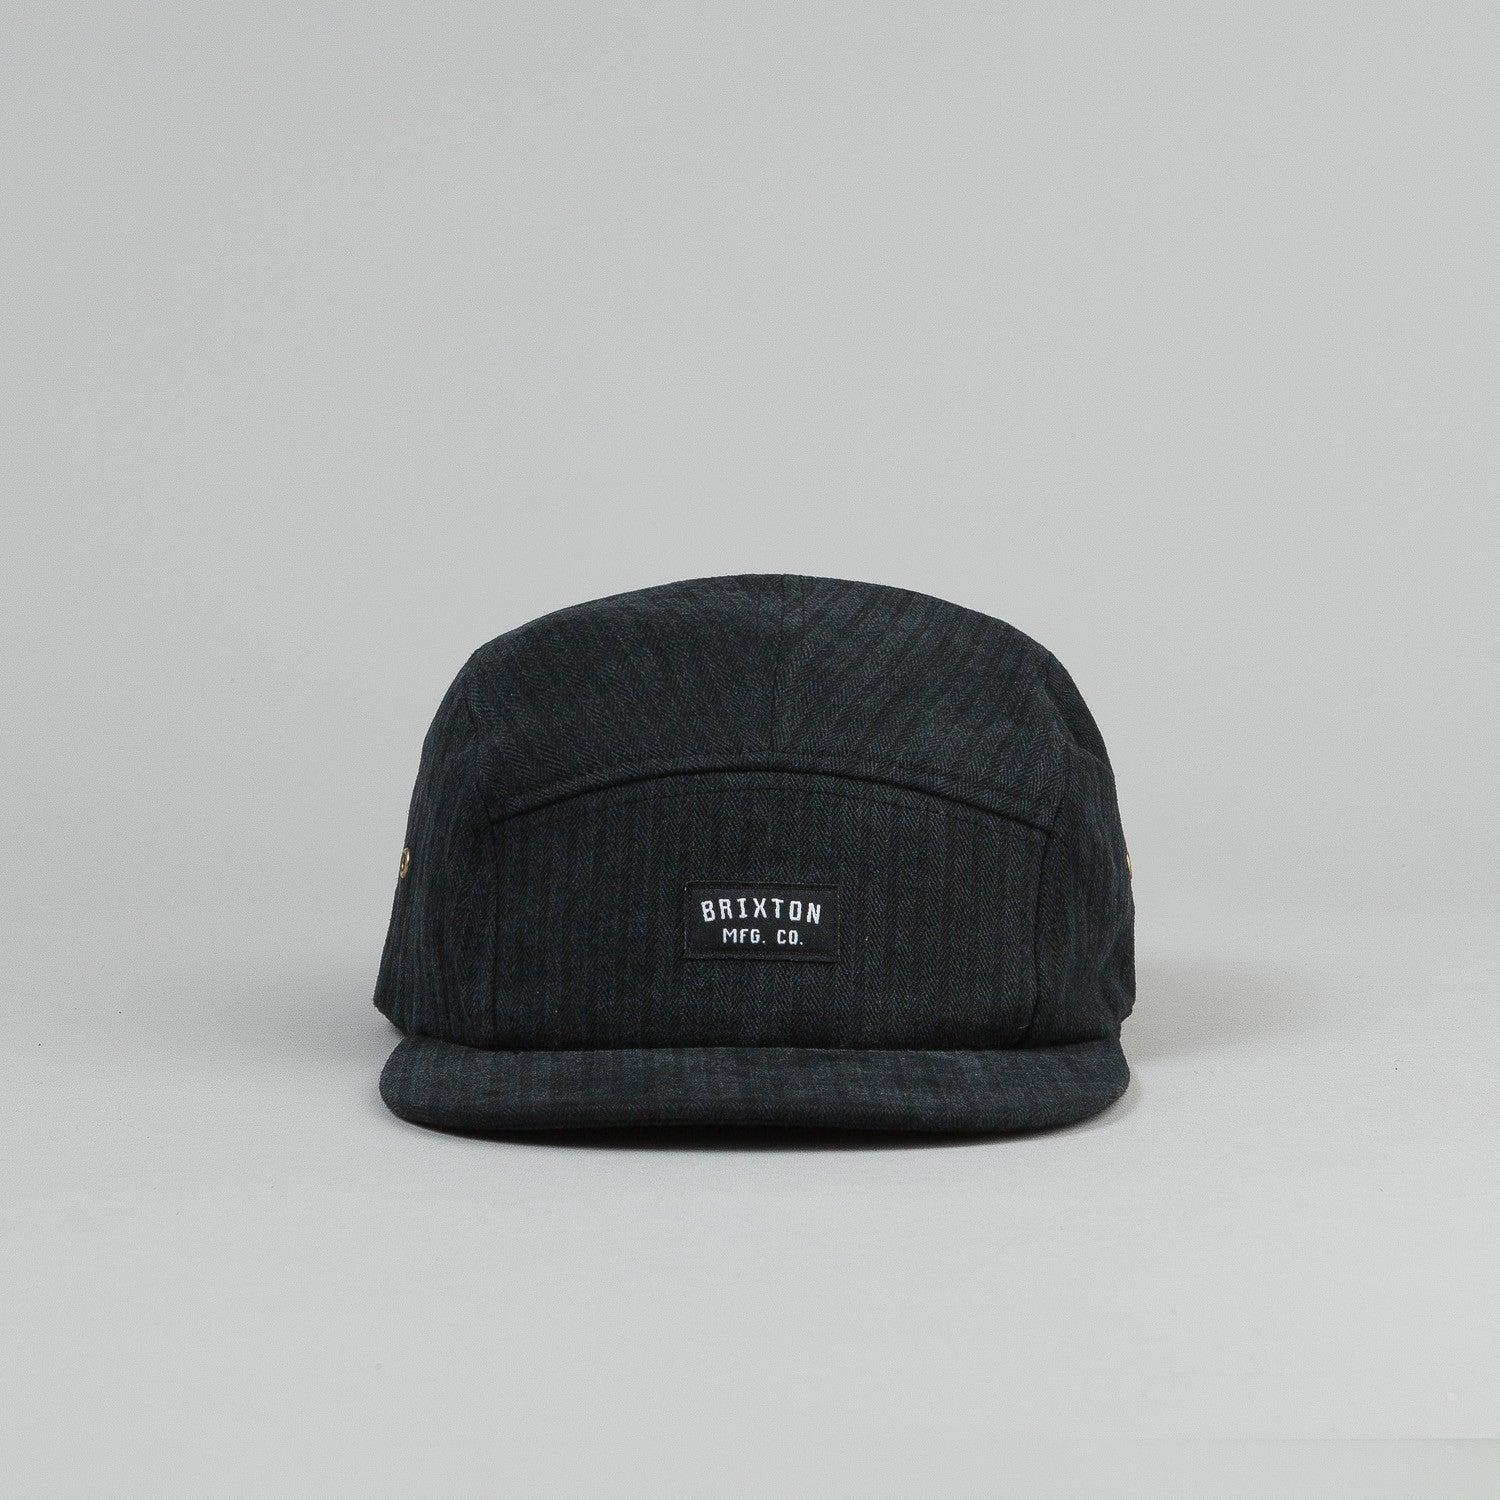 Brixton Hendrick 5 Panel Cap - Washed Black